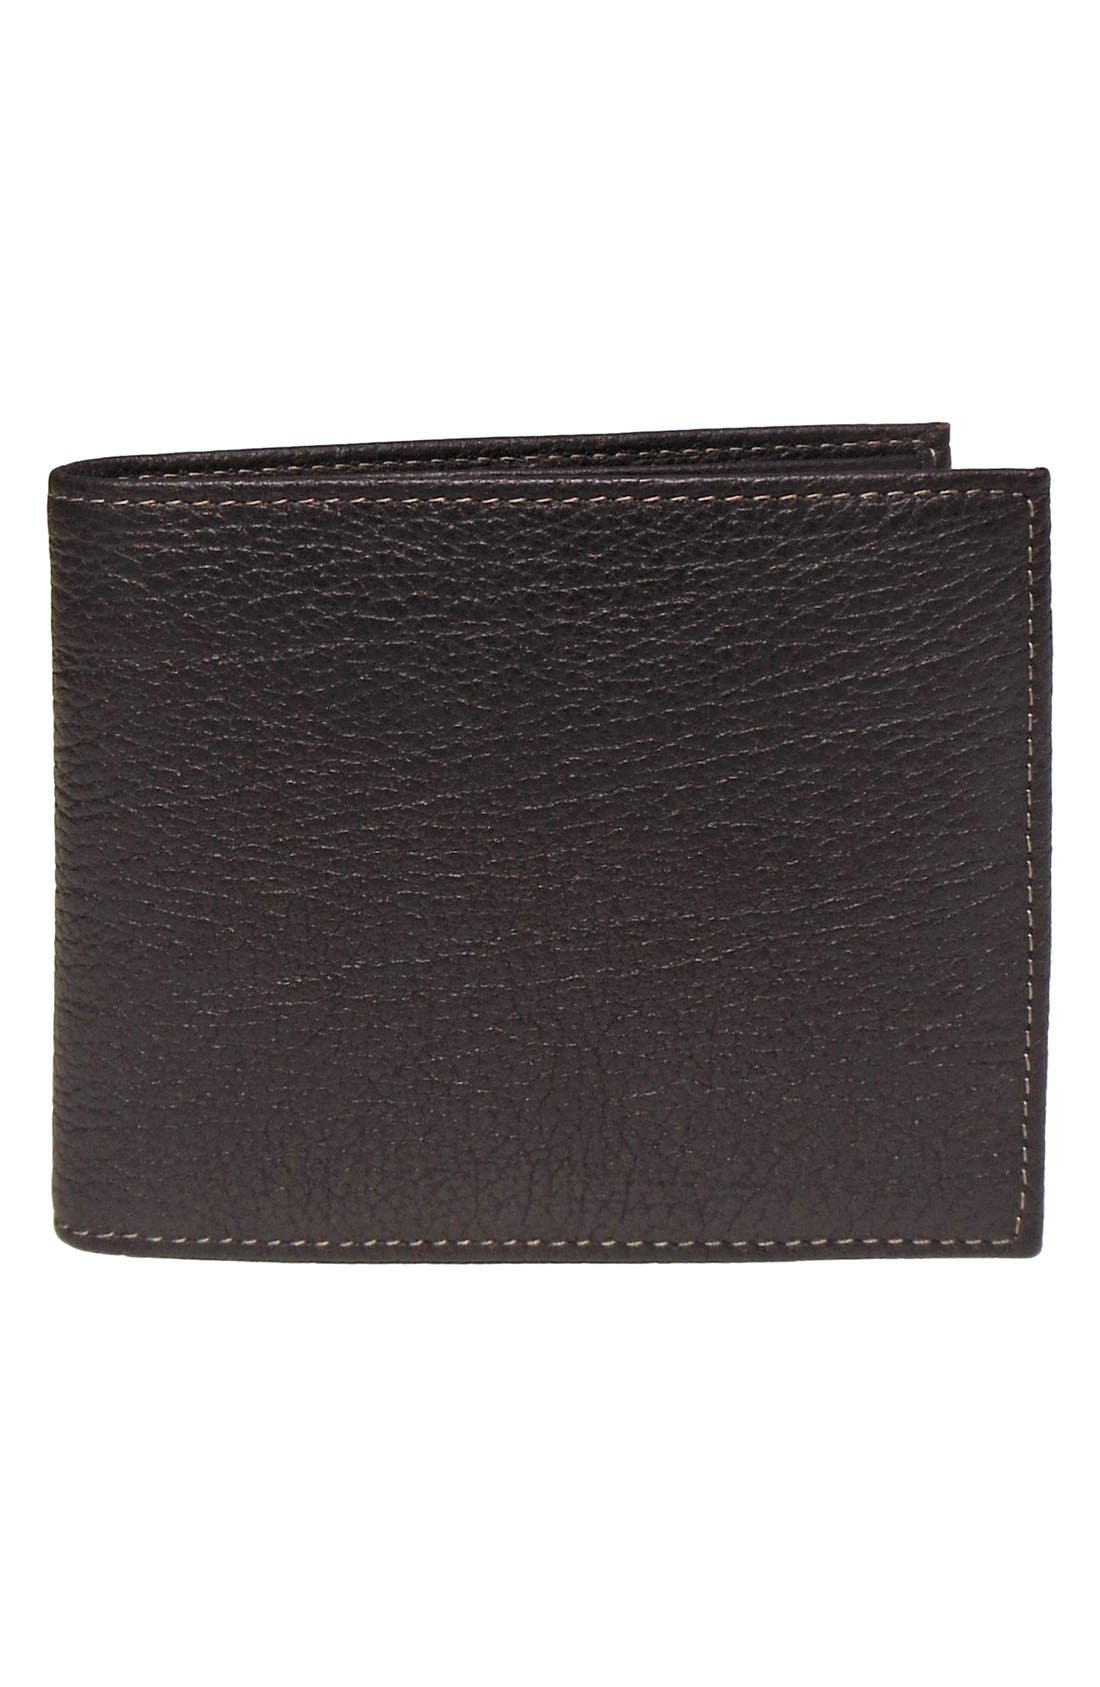 Main Image - Boconi Leather Wallet